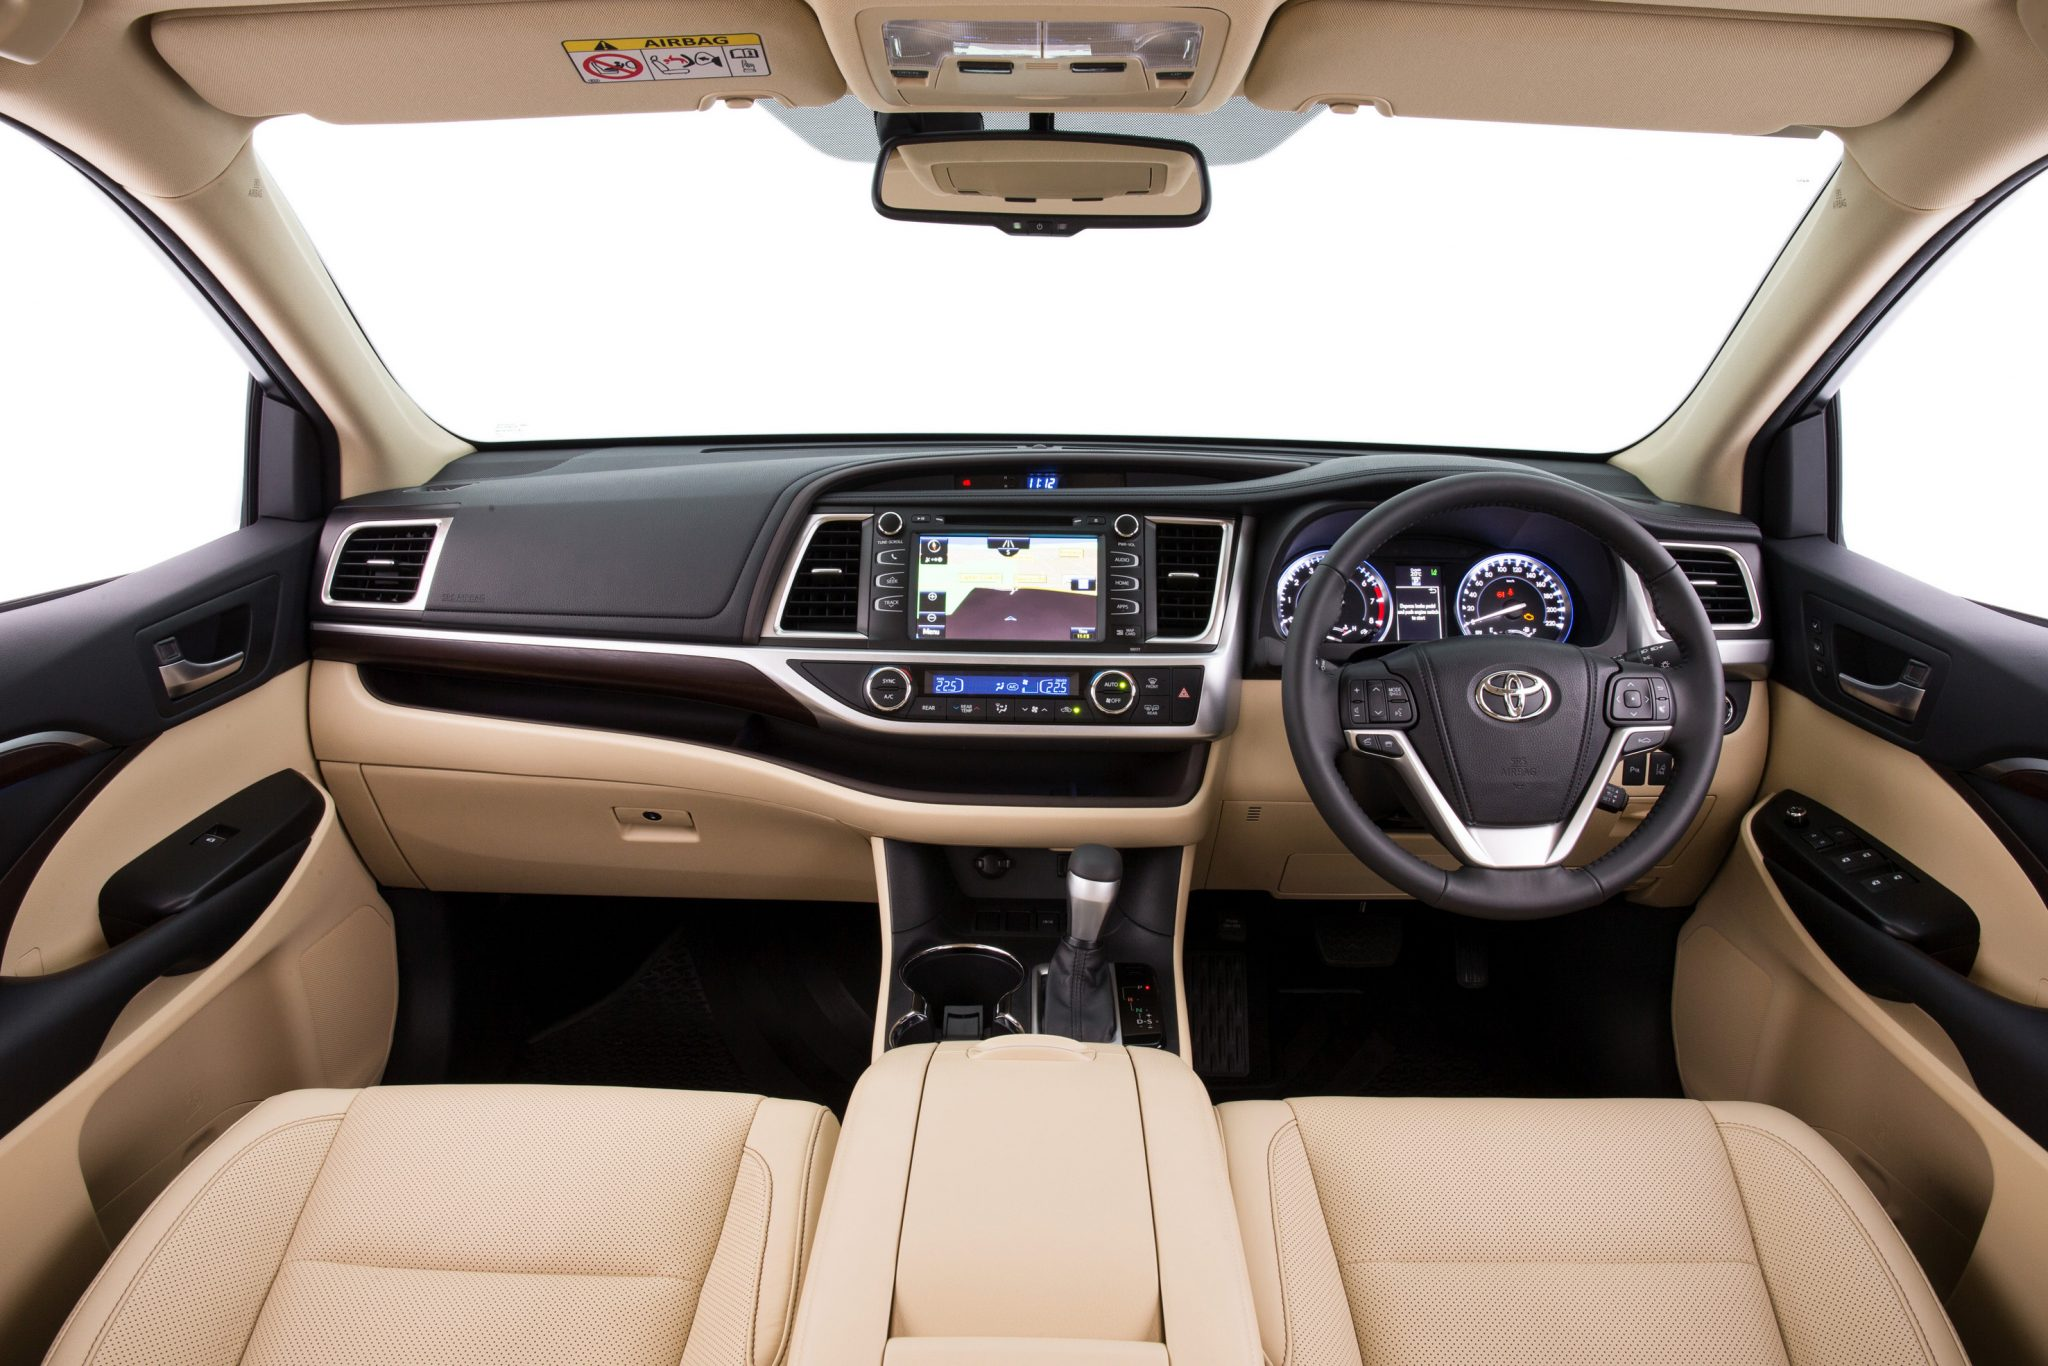 Toyota Cars - News: 3rd-generation Kluger pricing and specs